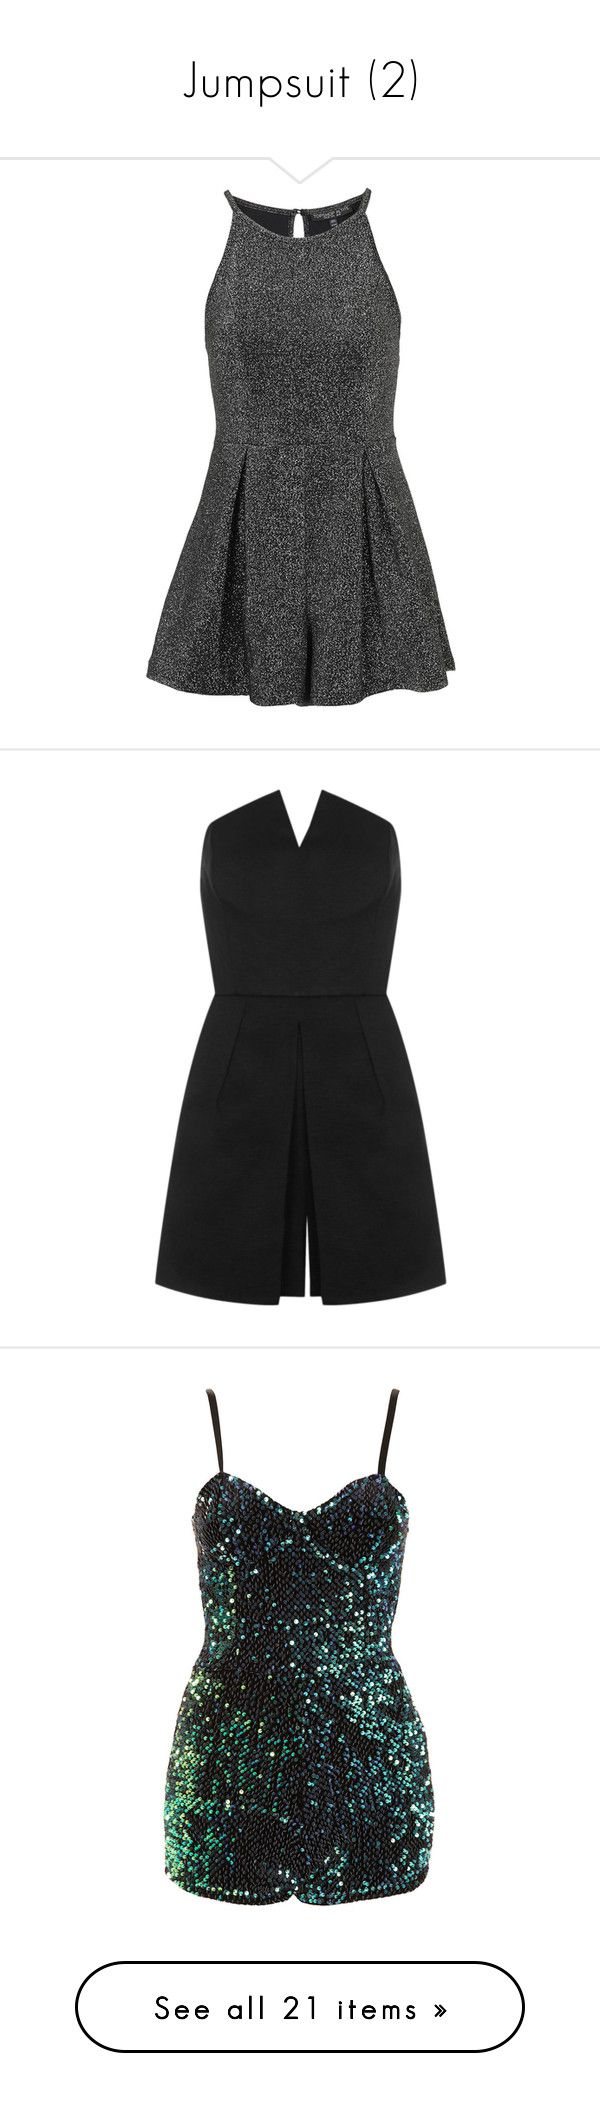 """Jumpsuit (2)"" by geniusmermaid ❤ liked on Polyvore featuring jumpsuits, rompers, dresses, vestidos, playsuits, petite, silver, topshop romper, topshop rompers and playsuit romper"